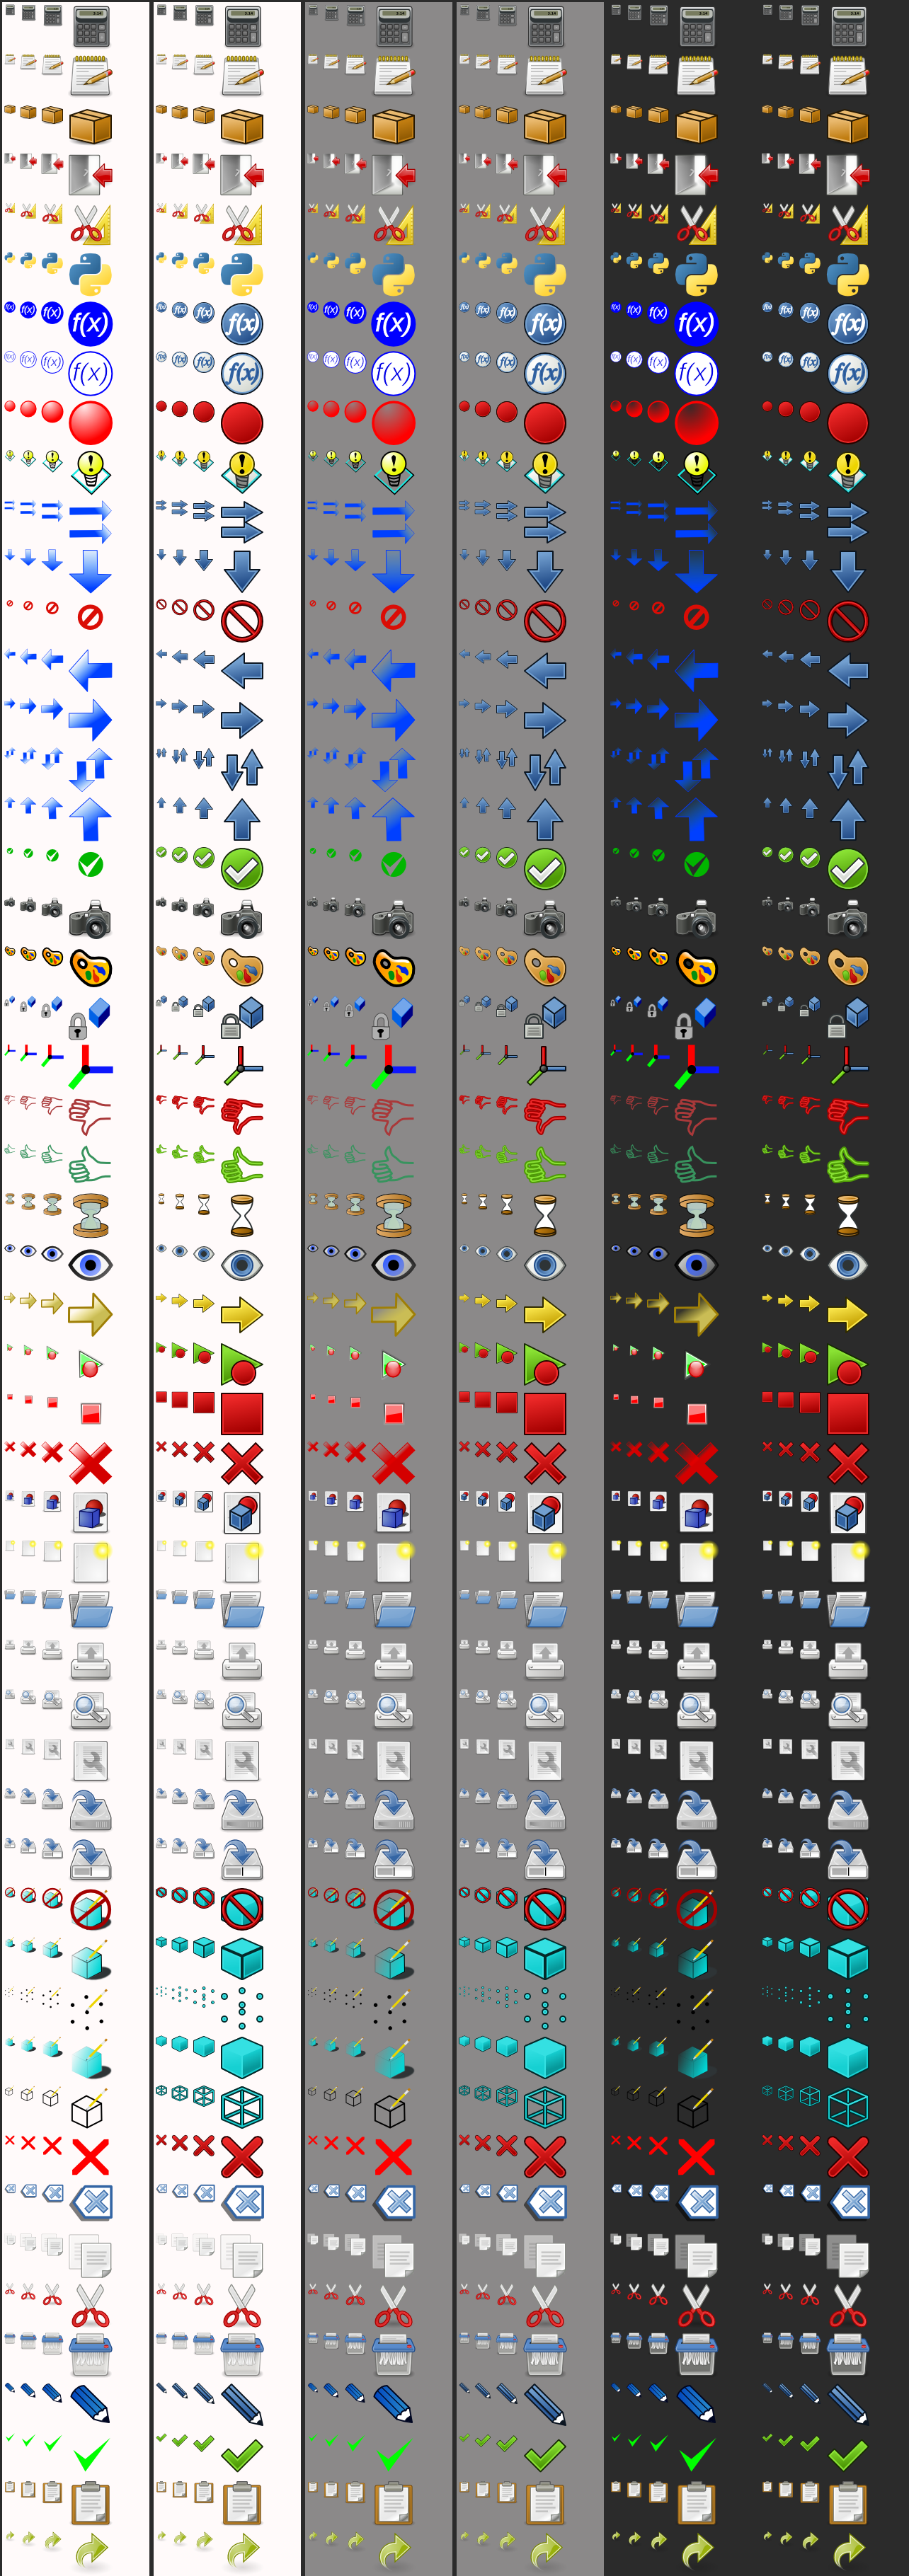 spritesheet_A.png